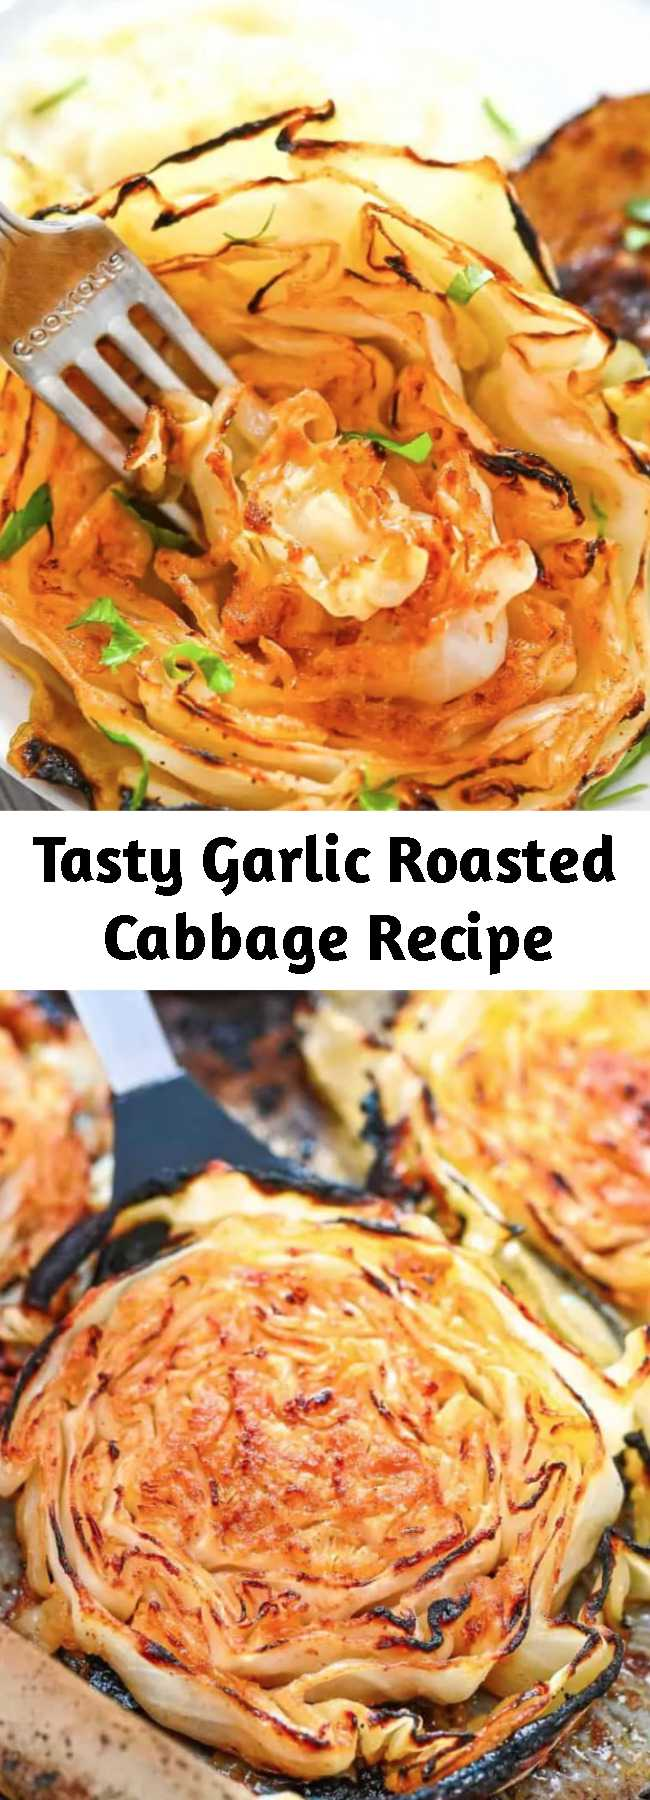 Tasty Garlic Roasted Cabbage Recipe - This Garlic Roasted Cabbage is such a tasty vegan dish. Savory with a light char, you're going to love these delicious flavors and textures. #cabbage #dinner #vegan #plantbased #vegetarian